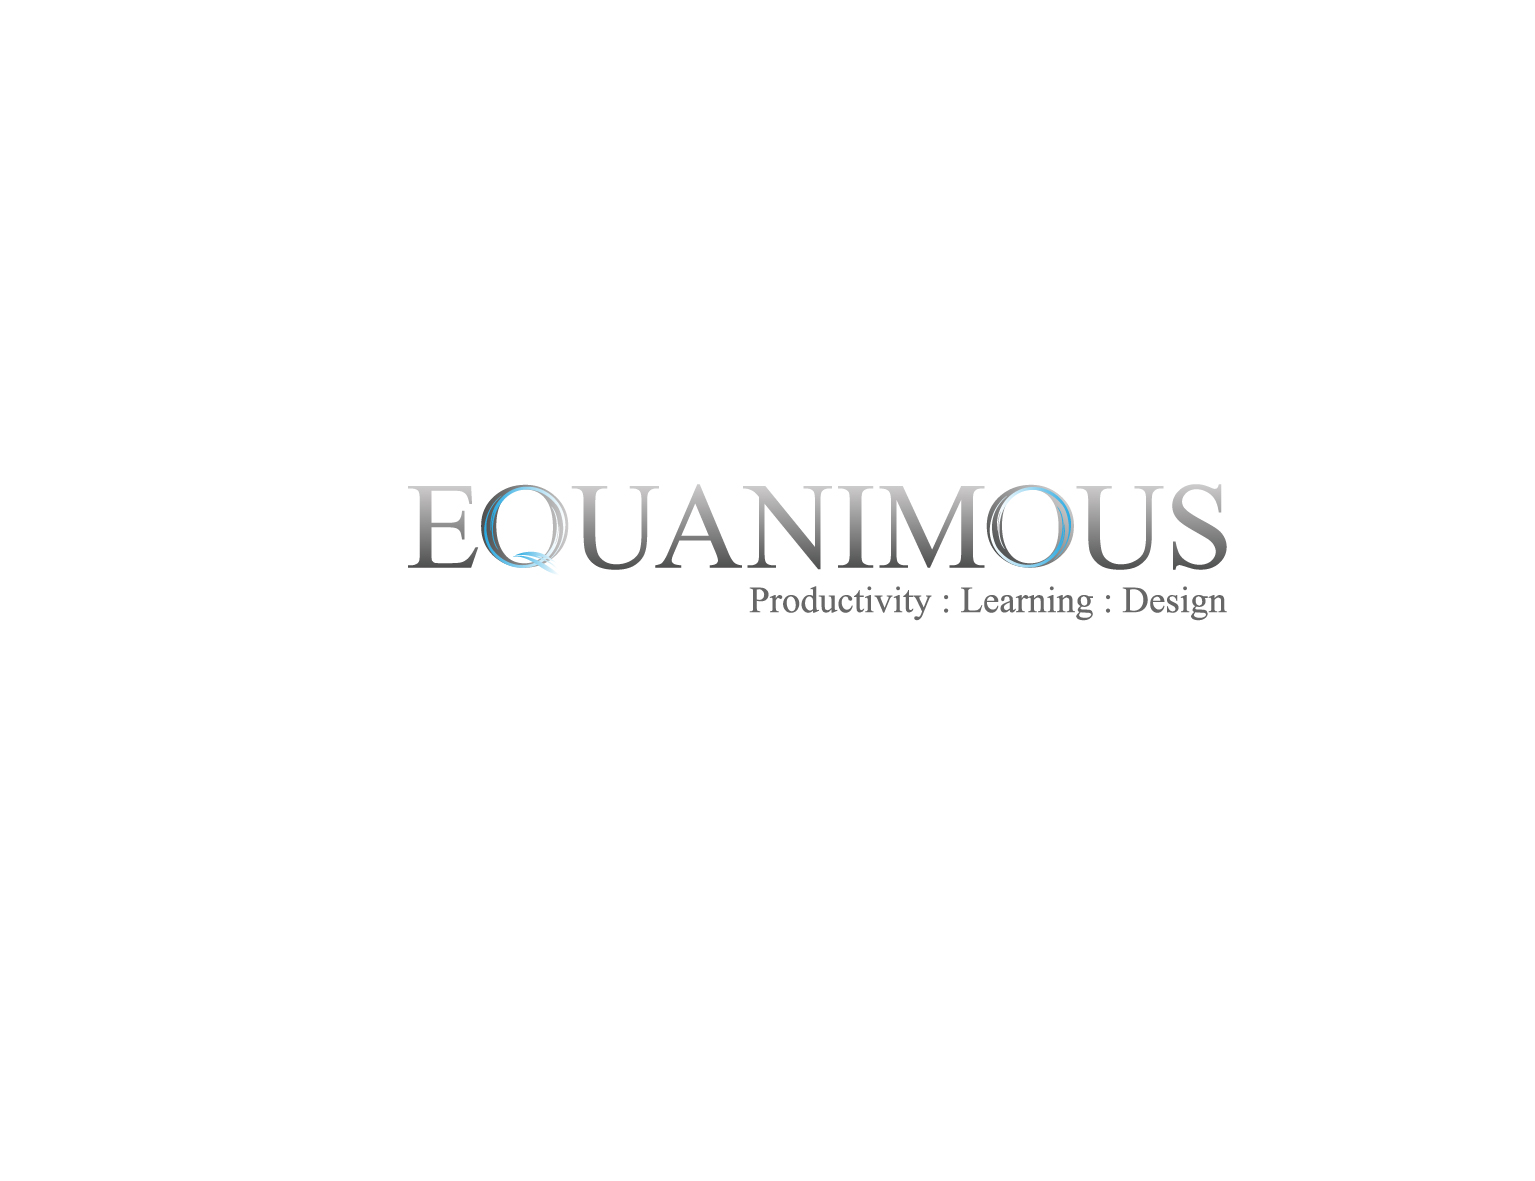 Logo Design by 3draw - Entry No. 421 in the Logo Design Contest Logo Design : EQUANIMOUS : Productivity | Learning | Design.